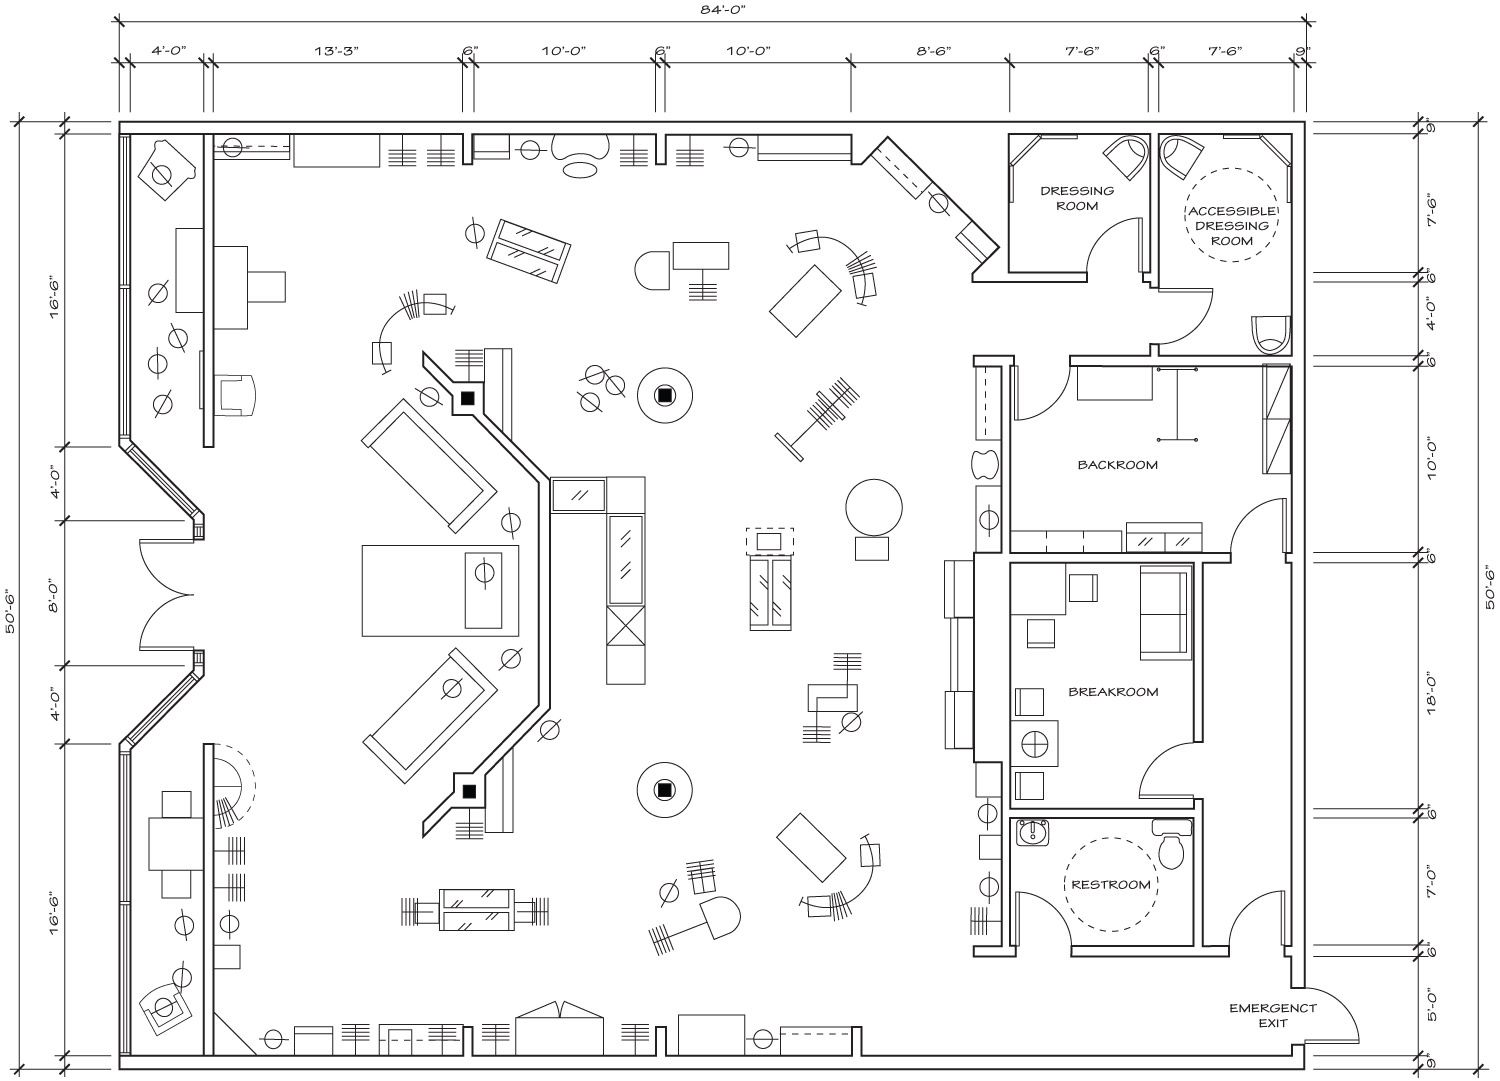 Retail Store Layout Floor Plan Store Plan Retail Store Design Floor Plan Design